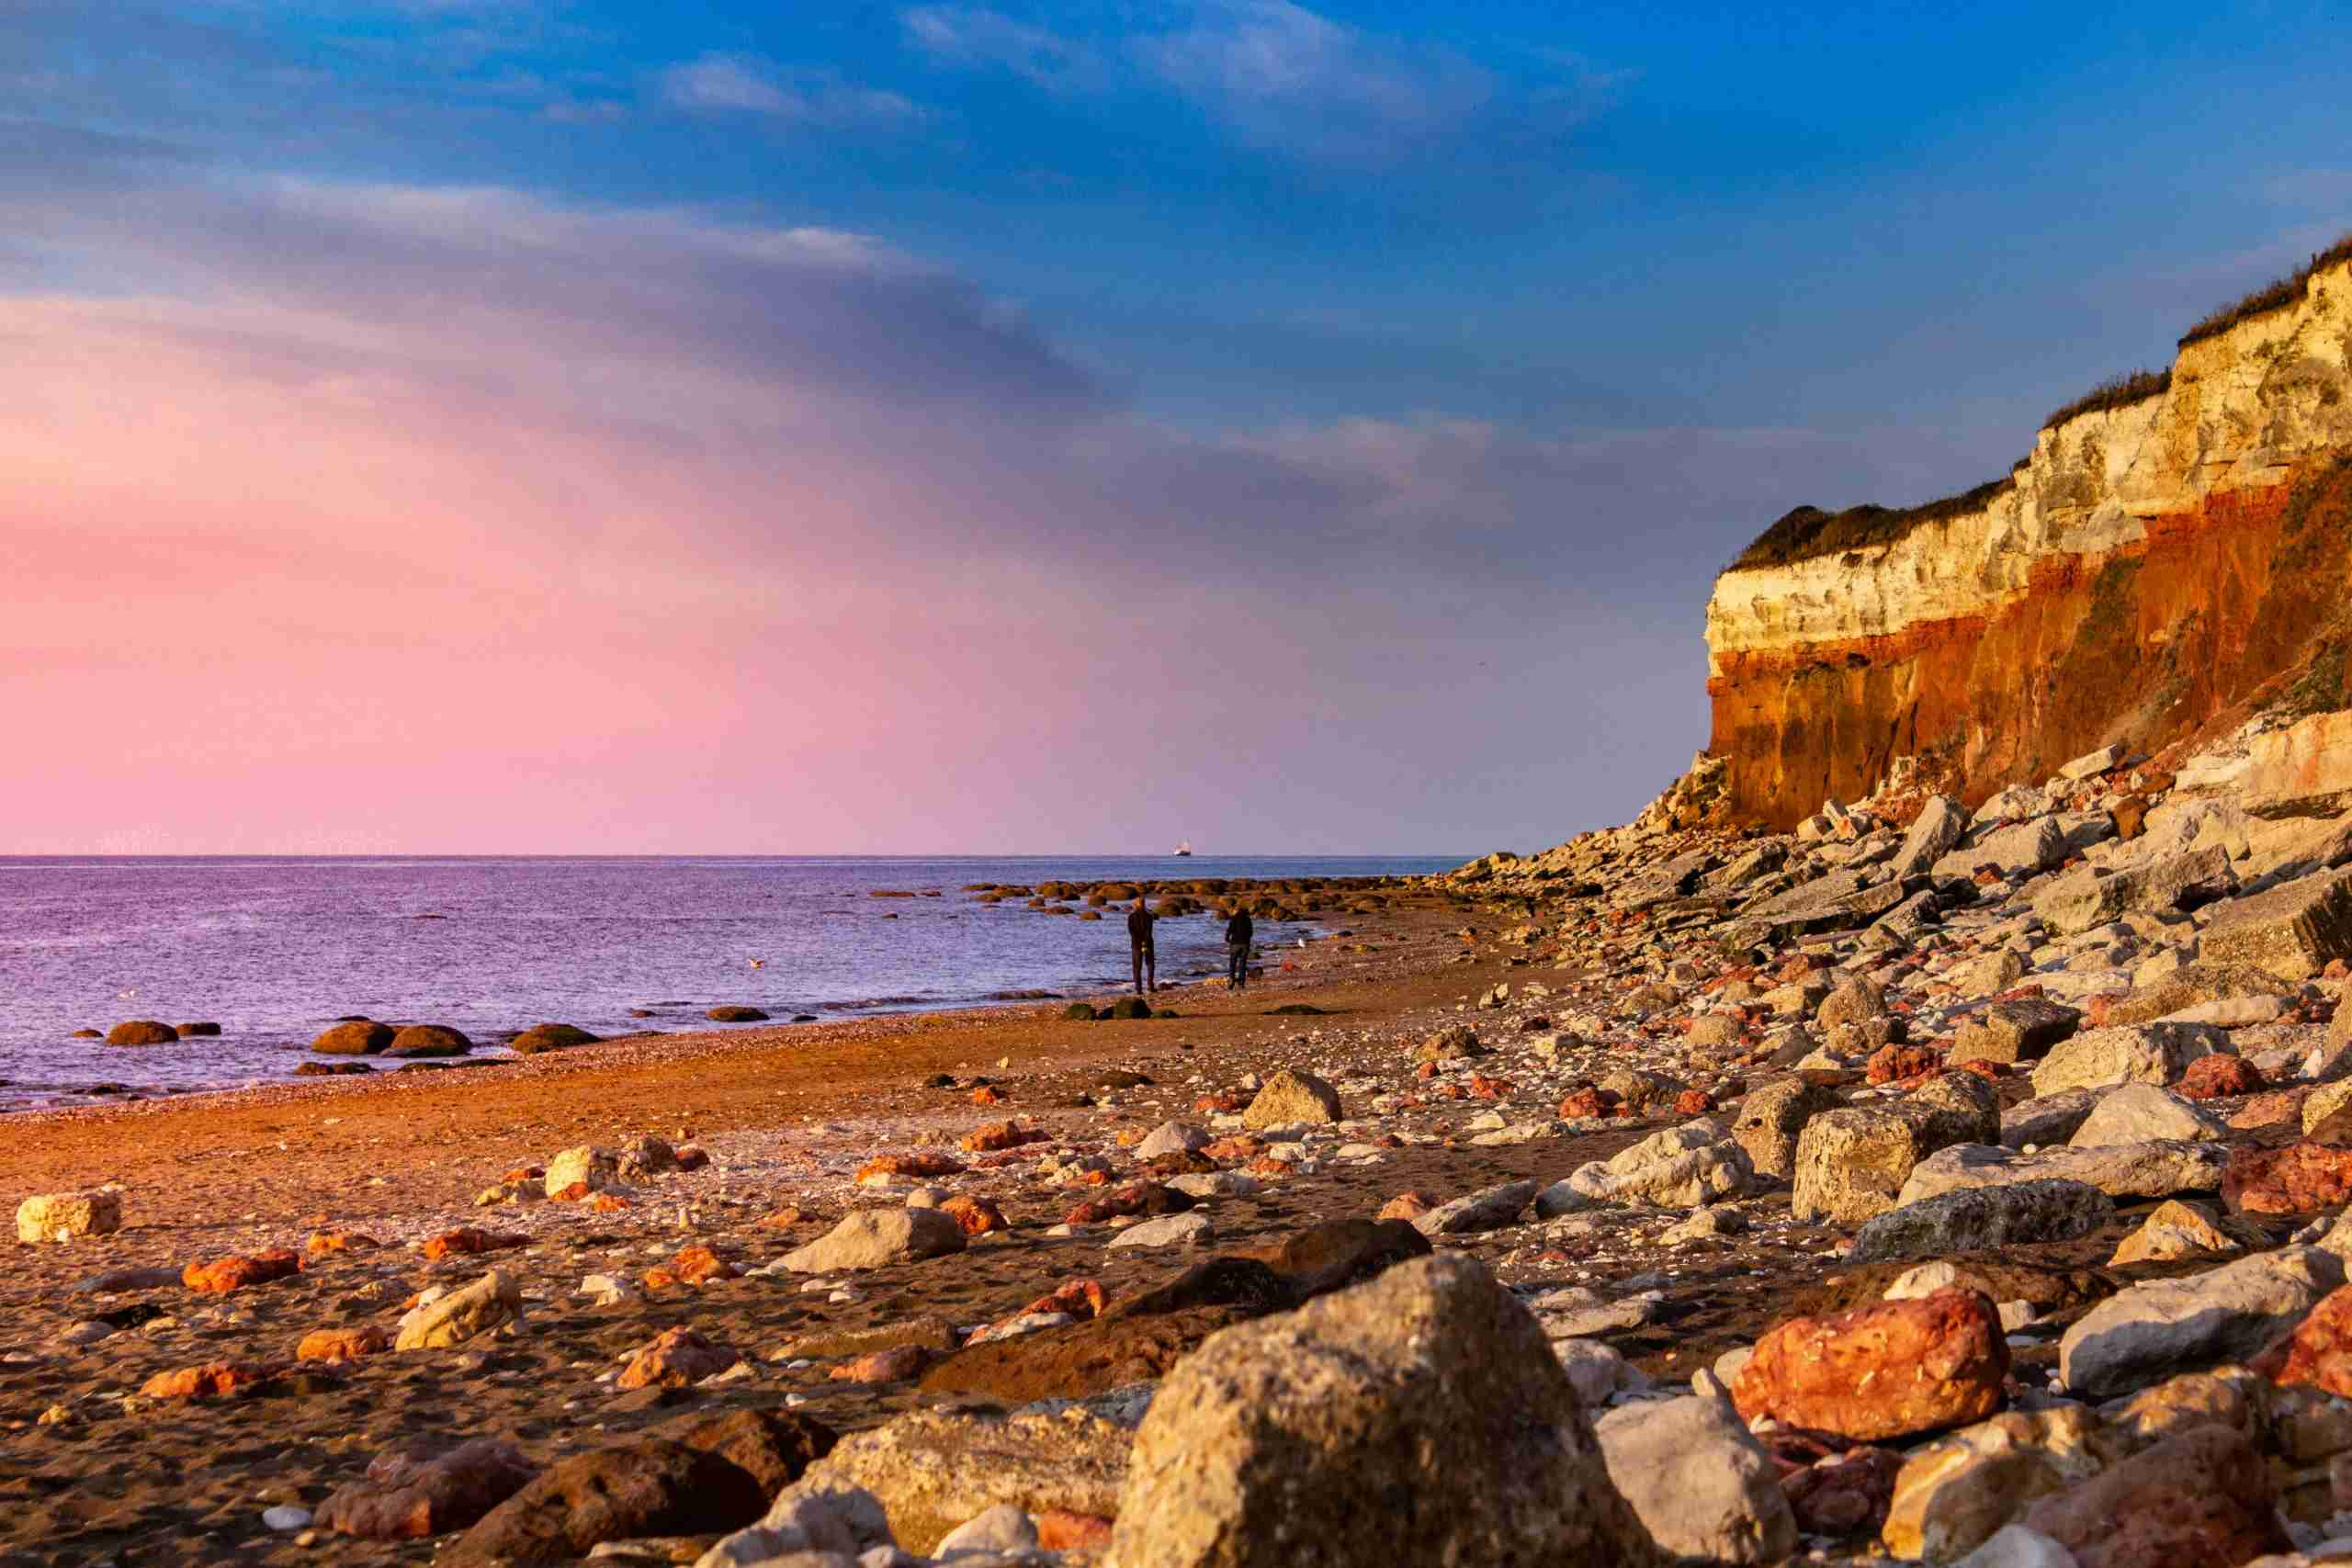 A spectacular sunset at Hunstanton. (Photo by Joel Santos/Getty Images)